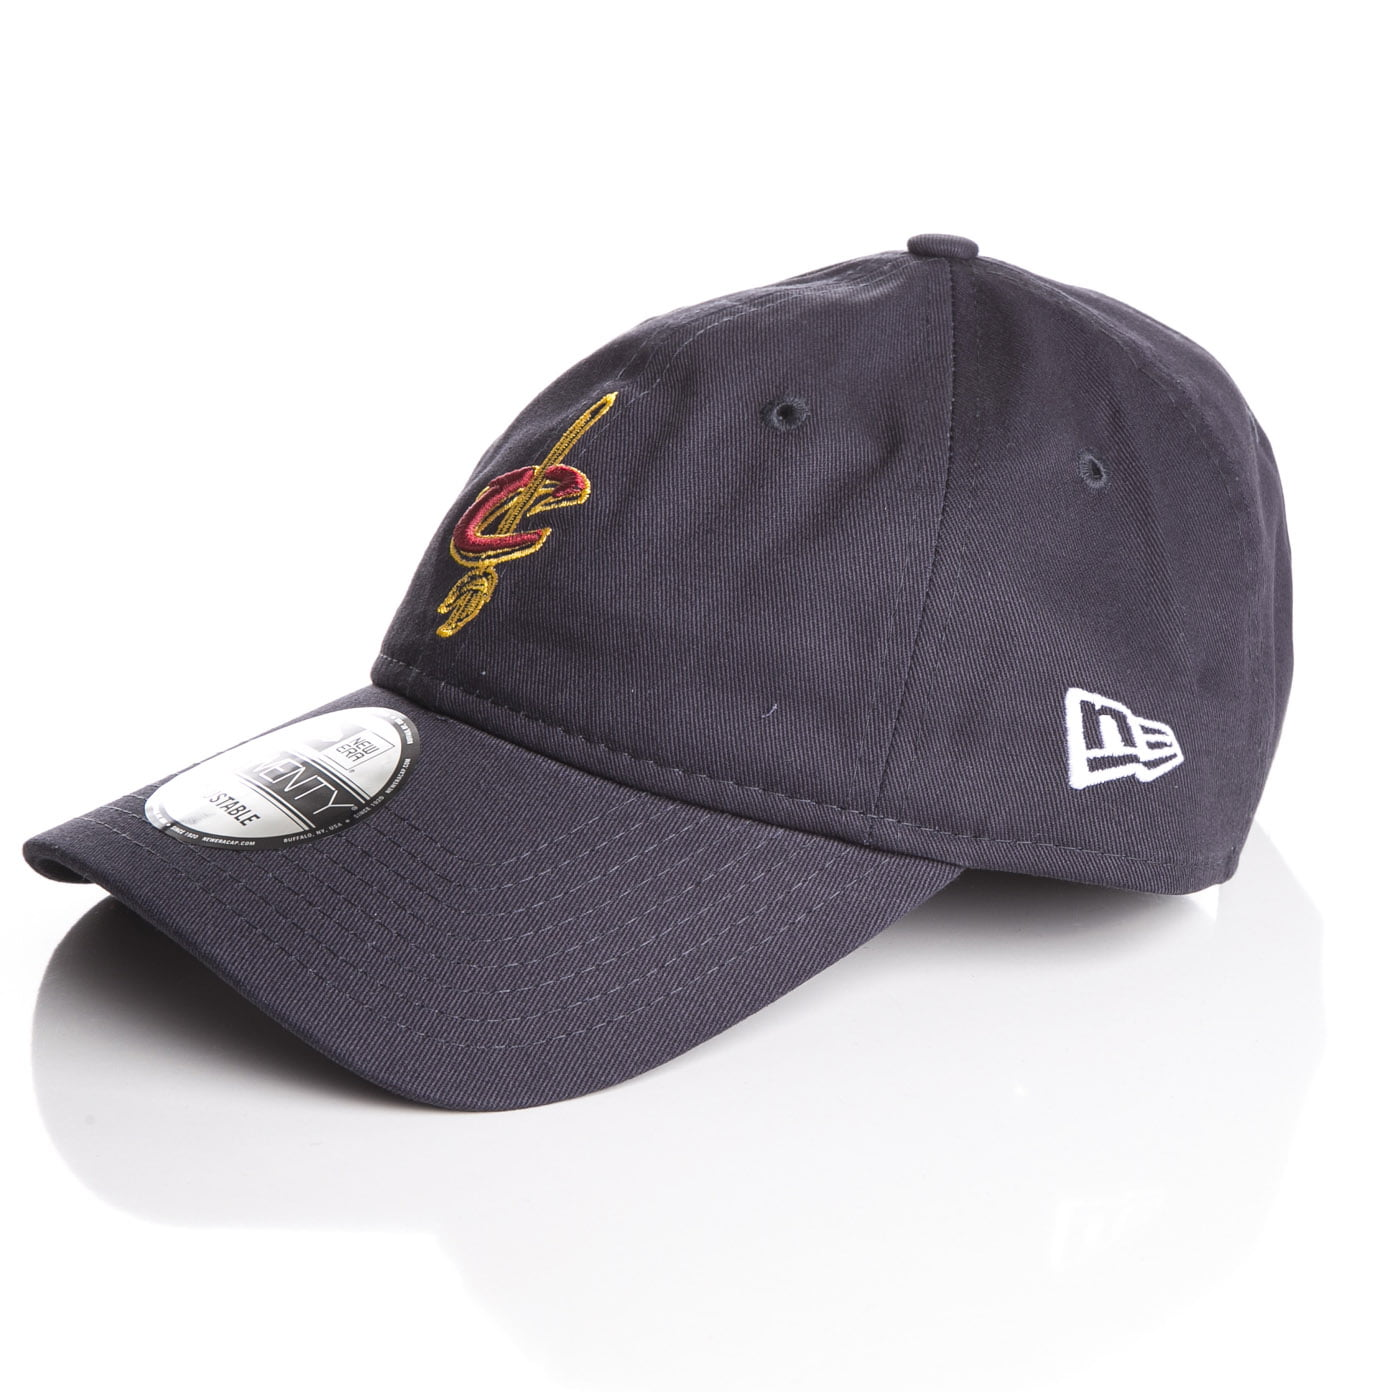 Bone Cleveland Cavaliers New Era 9twenty mini logo